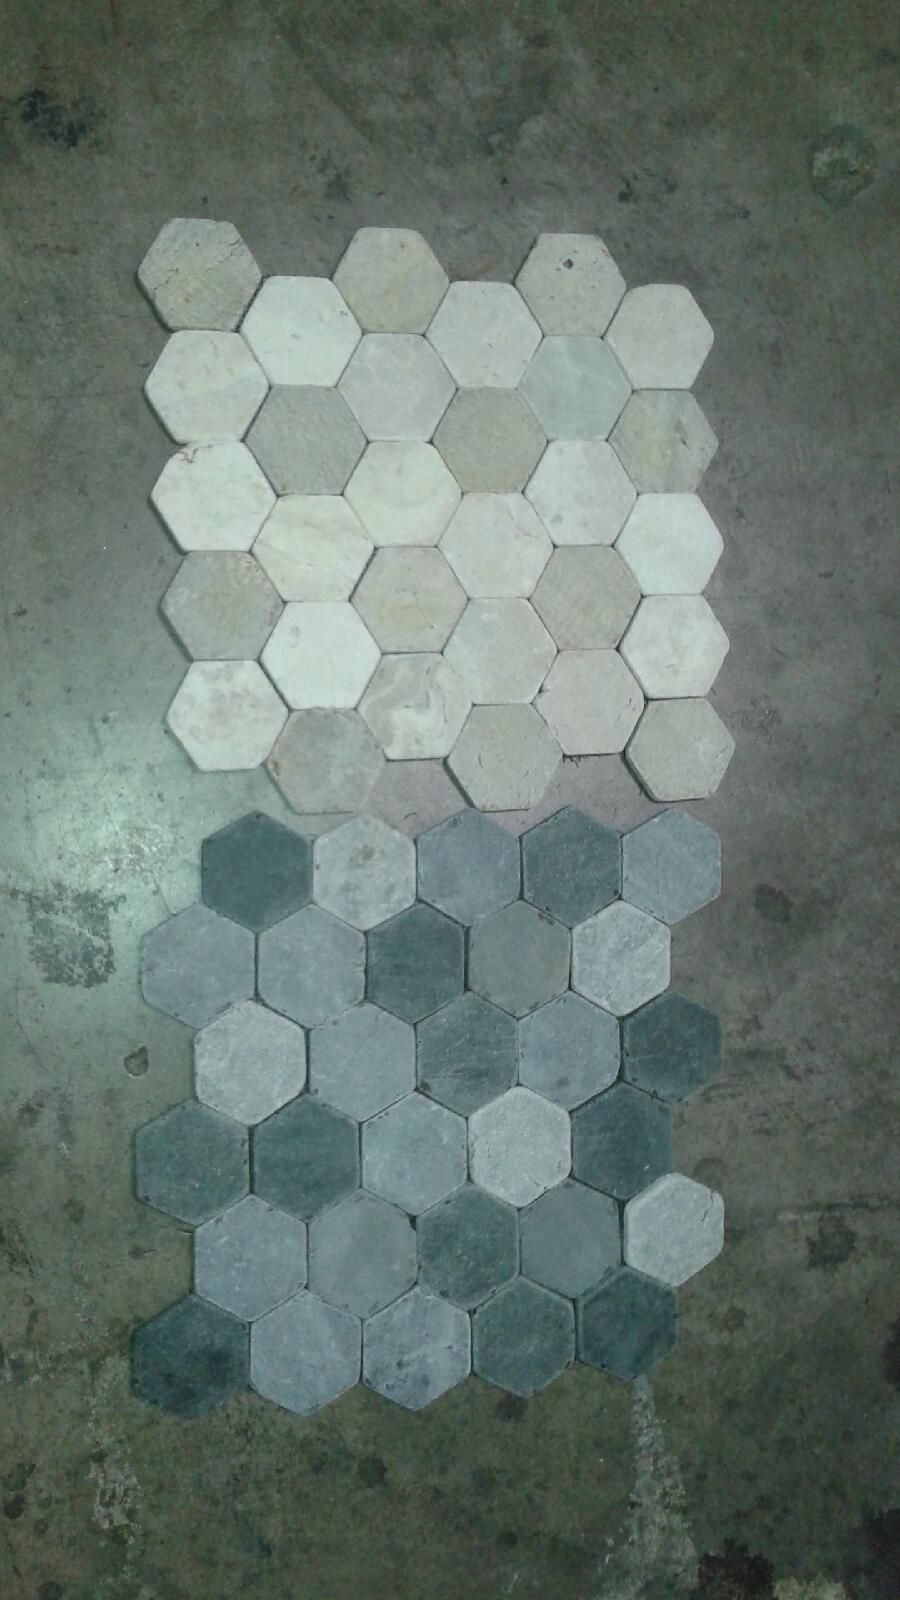 bottom hexagons are what we will have on the floor of the bathroom and shower